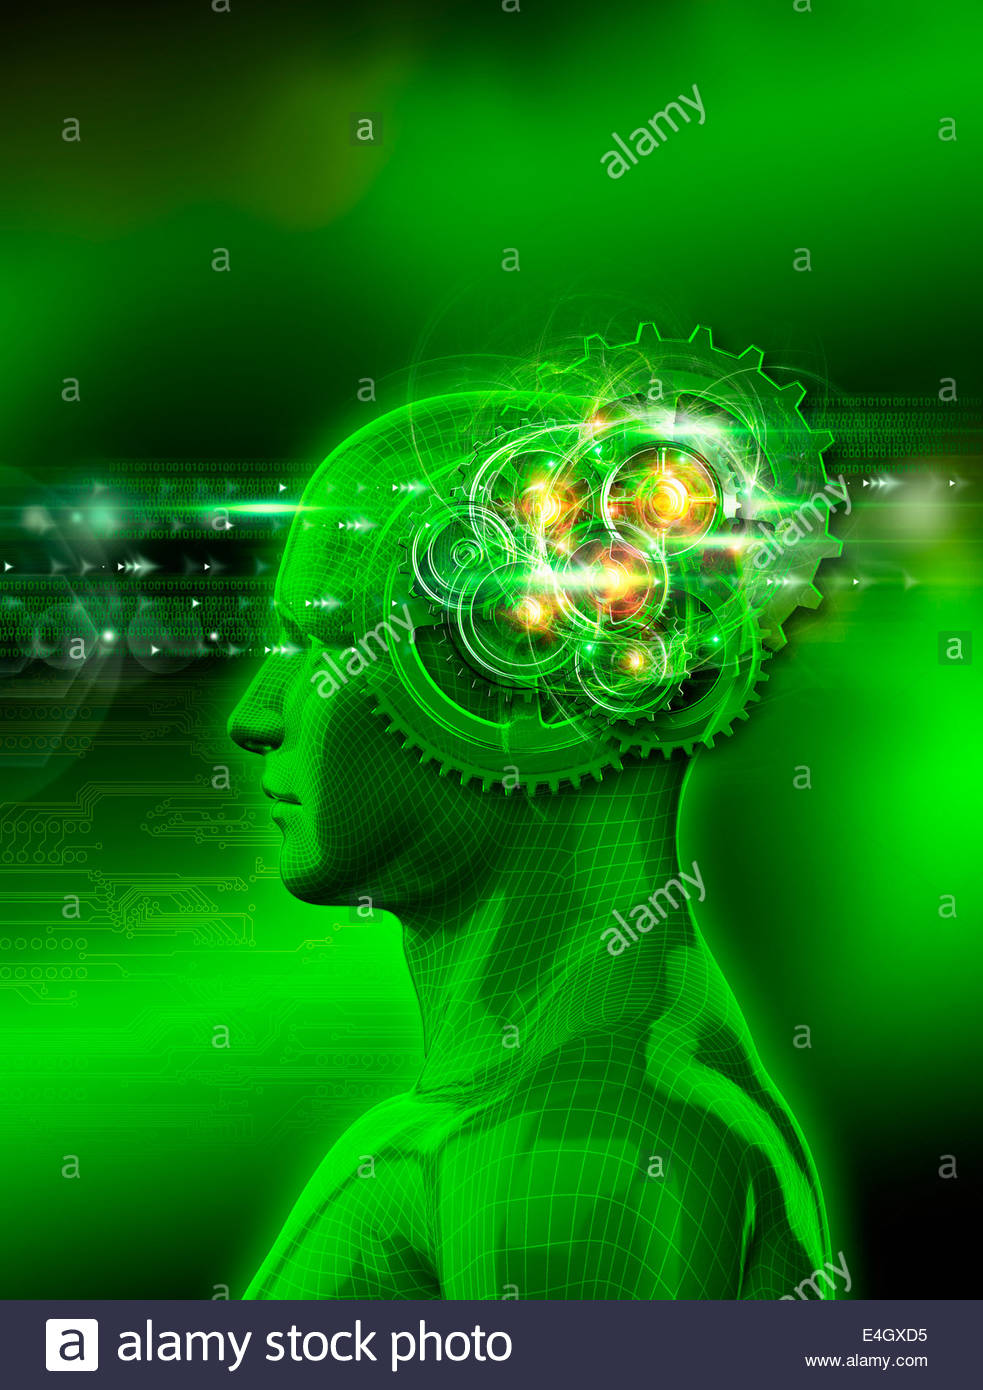 Model of man with sparks and spinning cogs inside head processing binary code Stock Photo